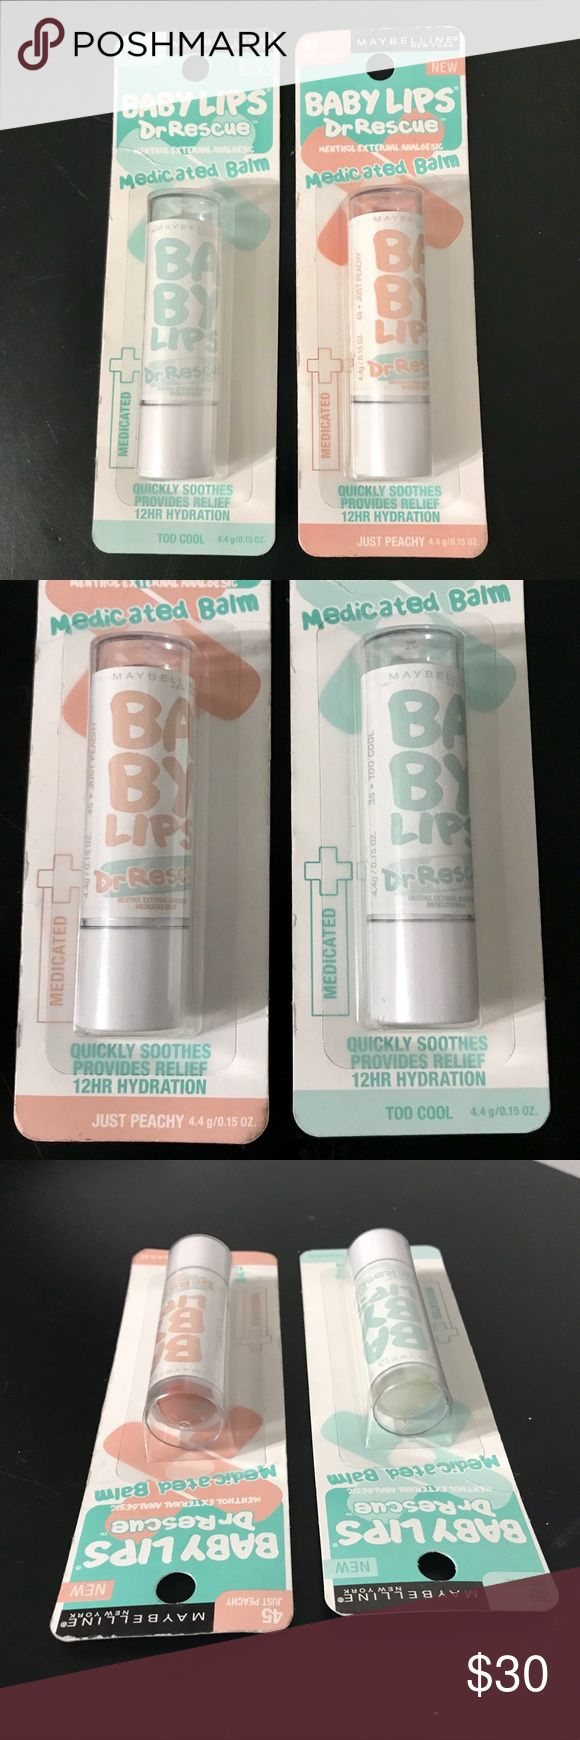 Two (2) Baby Lips Dr. Rescue Medicated Lip Balm! Two brand new full-size Baby Lips Dr. Rescue medicated lip balm by Maybelline. Quickly soothes, provides relief, 12 hour hydration. Active ingredient menthol 0.5% for external analgesic. Included in this bundle are two flavors: TOO COOL #35 and JUST PEACHY #45. Maybelline Makeup Lip Balm & Gloss